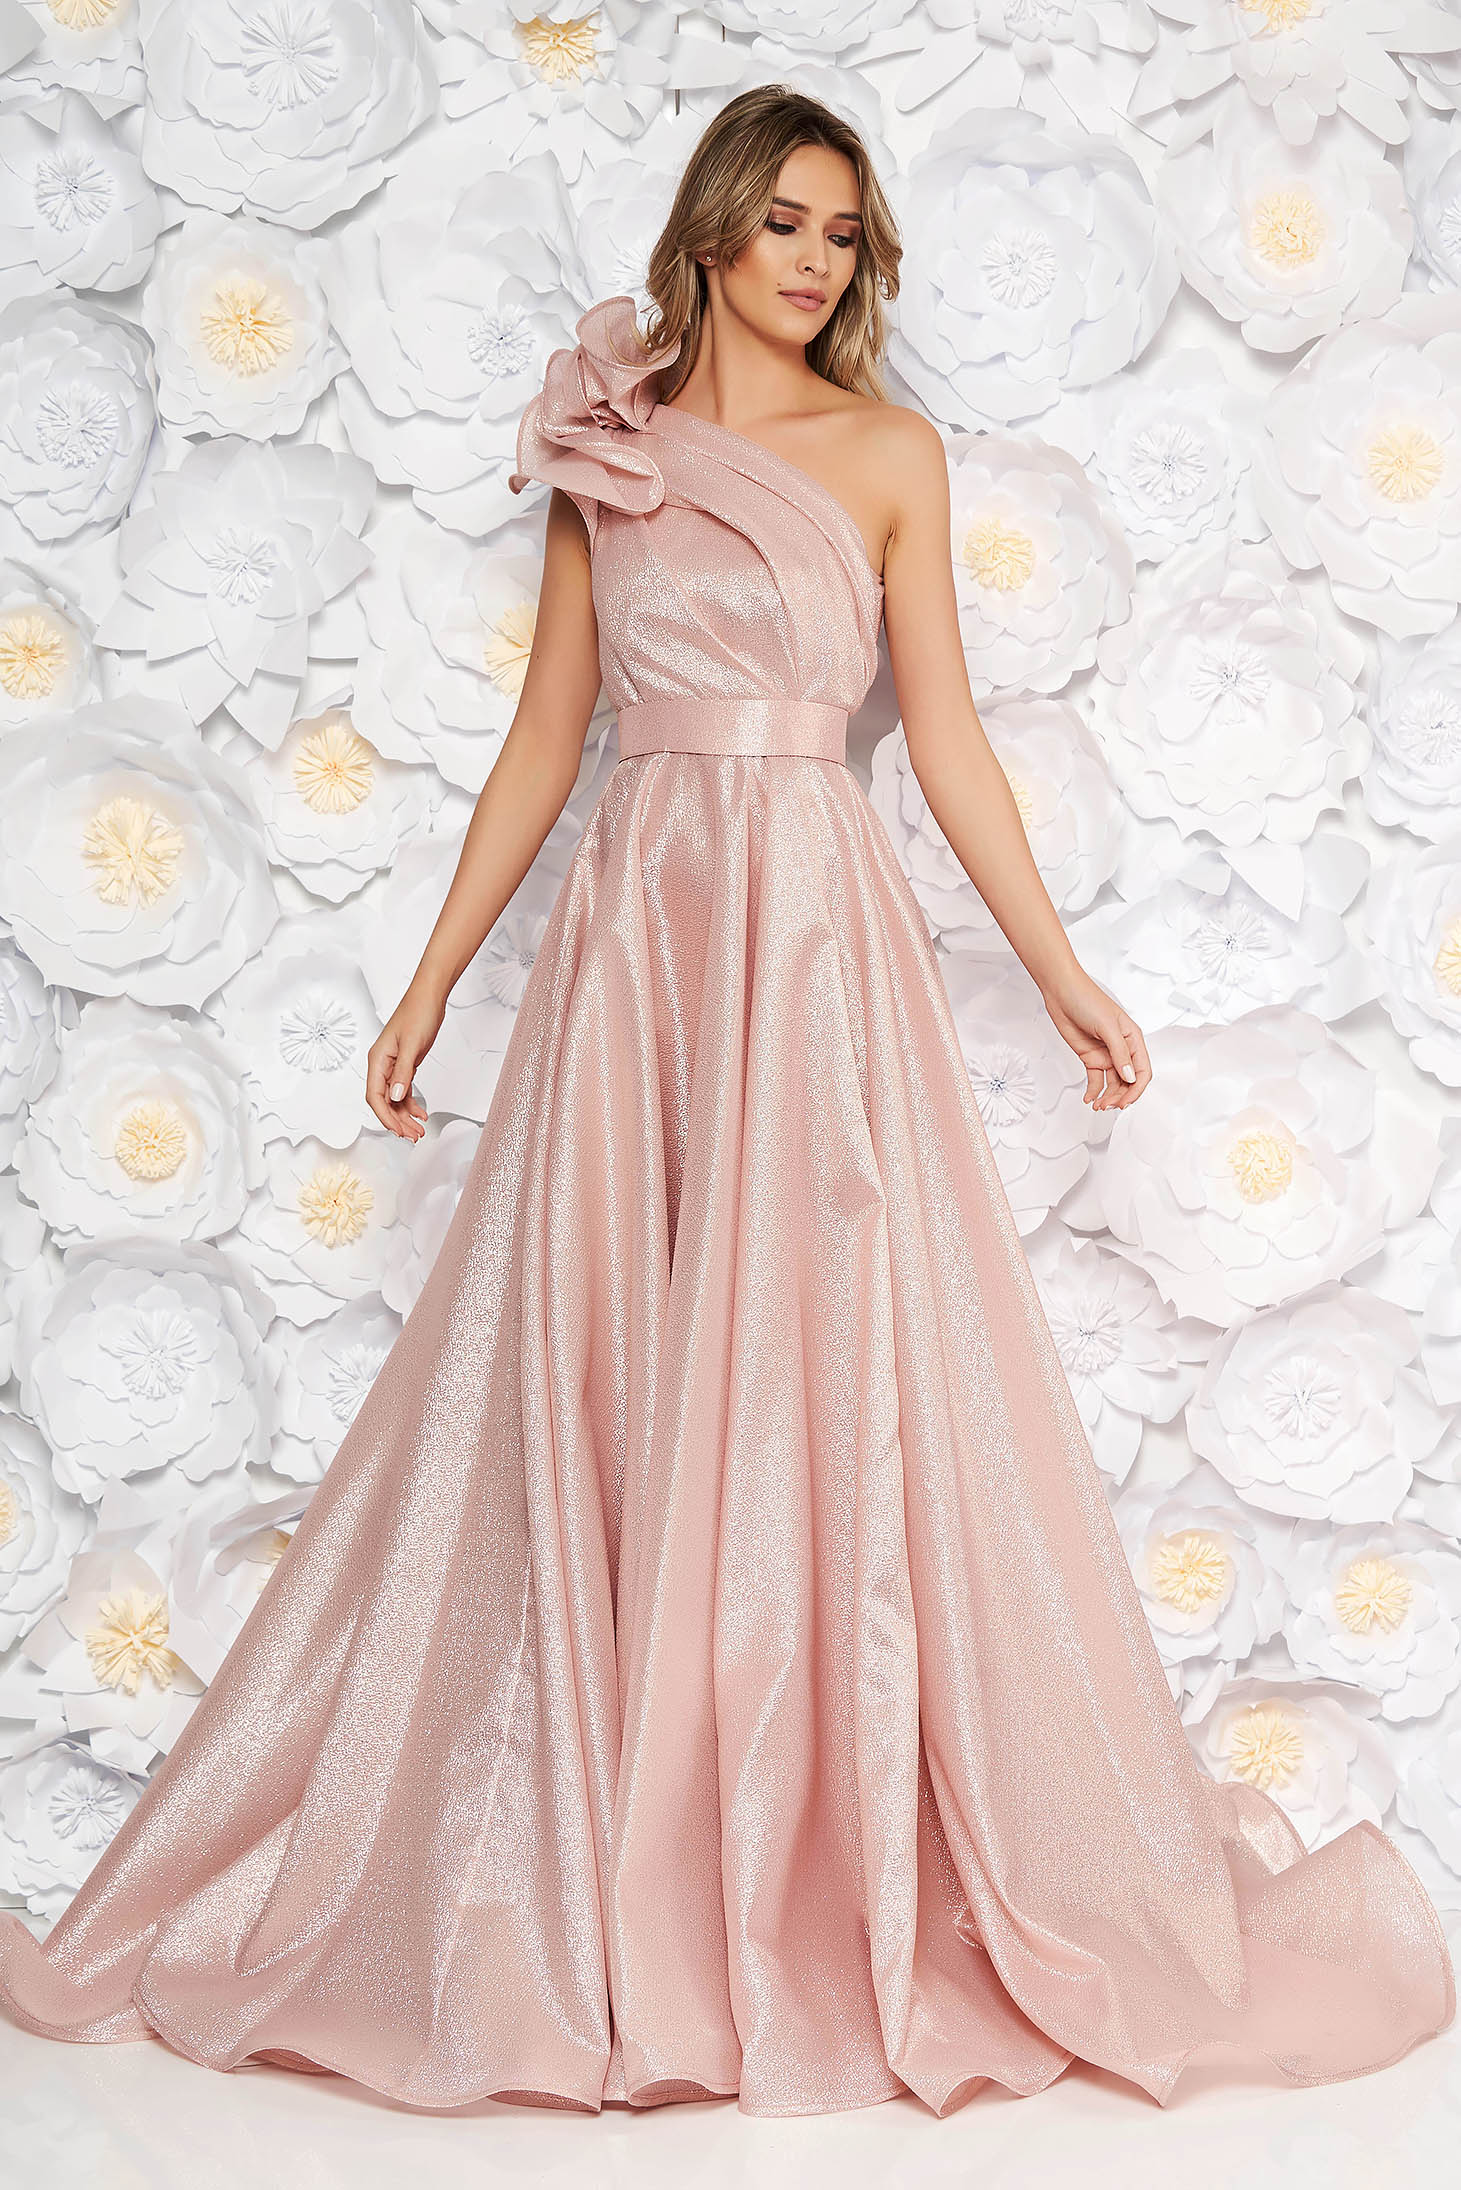 Ana Radu rosa luxurious cloche dress nonelastic fabric with metallic aspect with inside lining with ruffle details